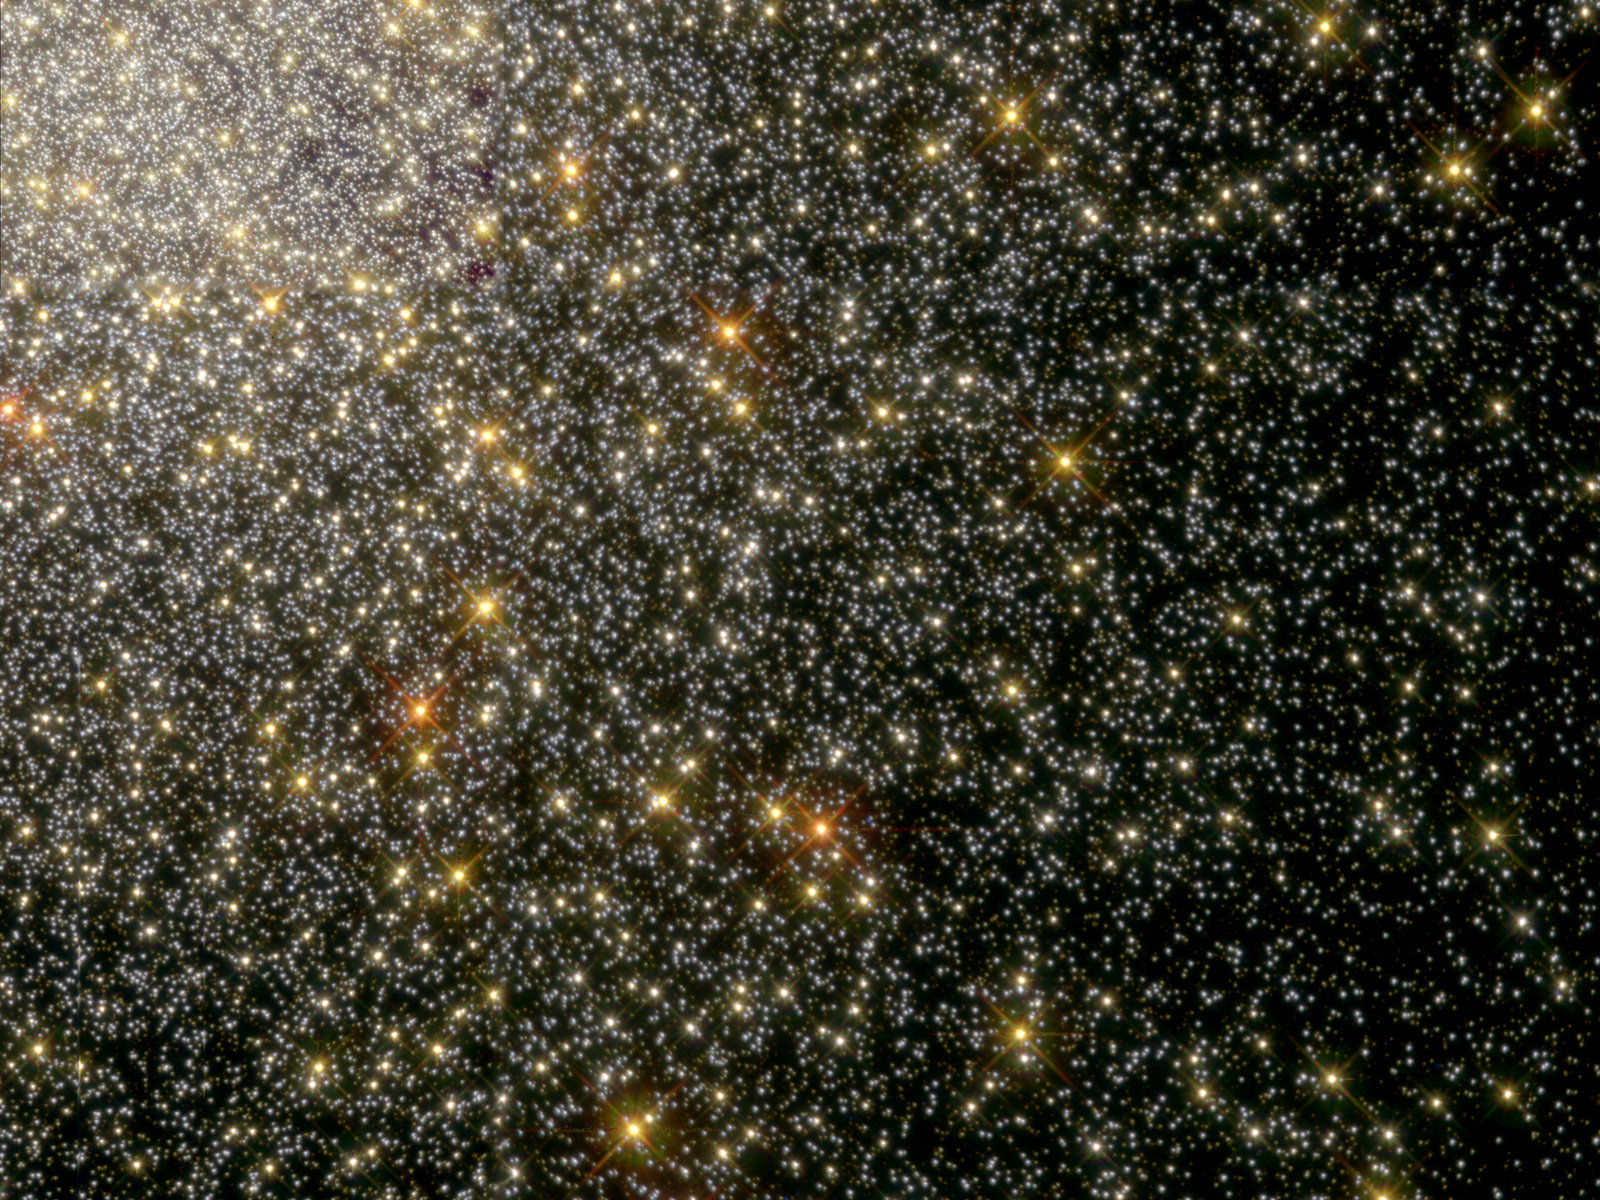 star wallpaper 6 you are viewing the star wallpaper named star 6 it ...